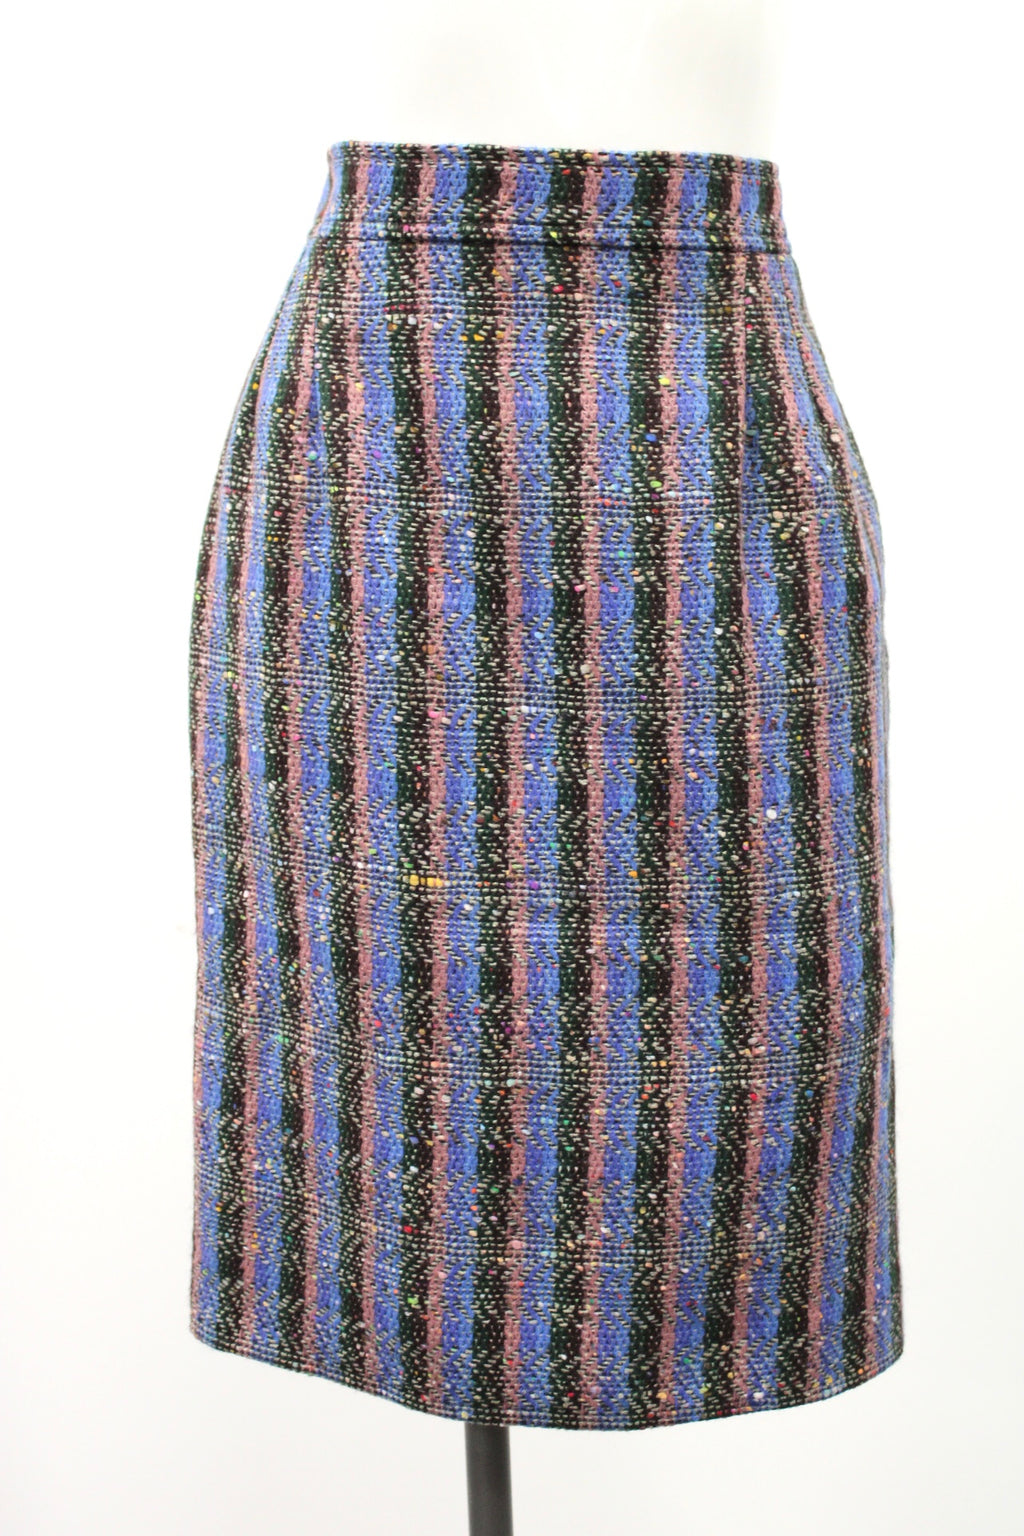 Christian Lacroix Tweed Skirt